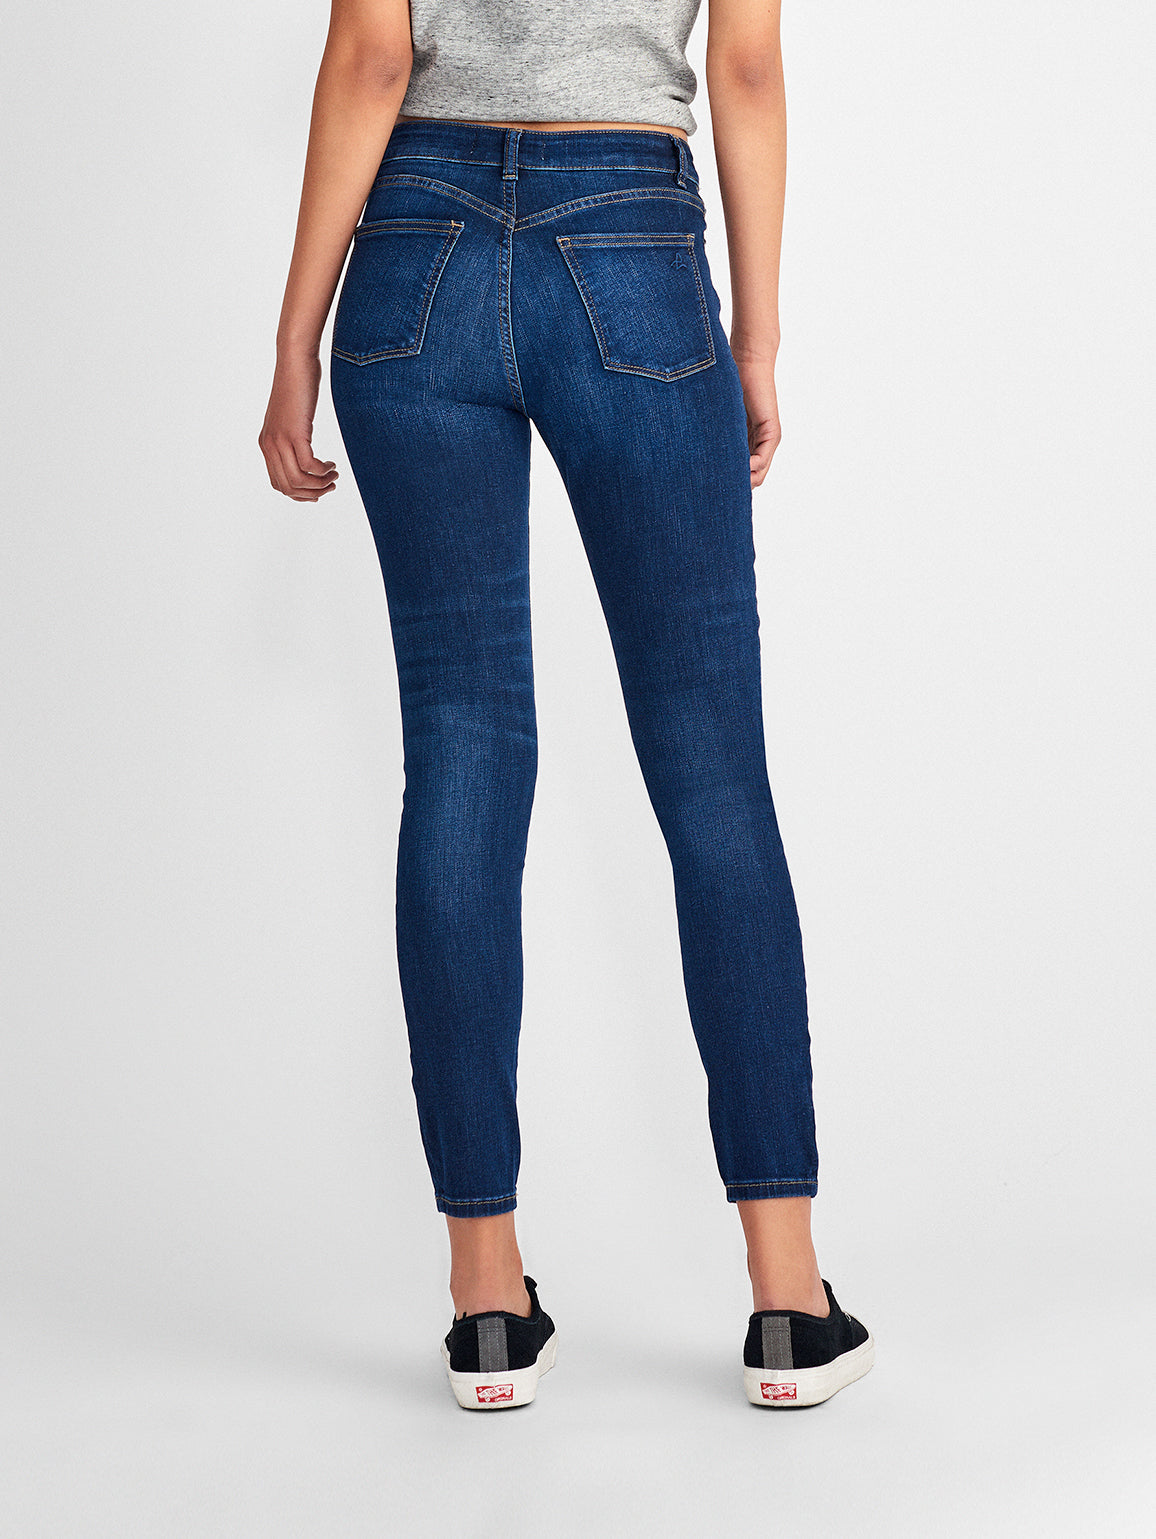 Farrow High Rise Skinny | Delancy Dl 1961 Denim